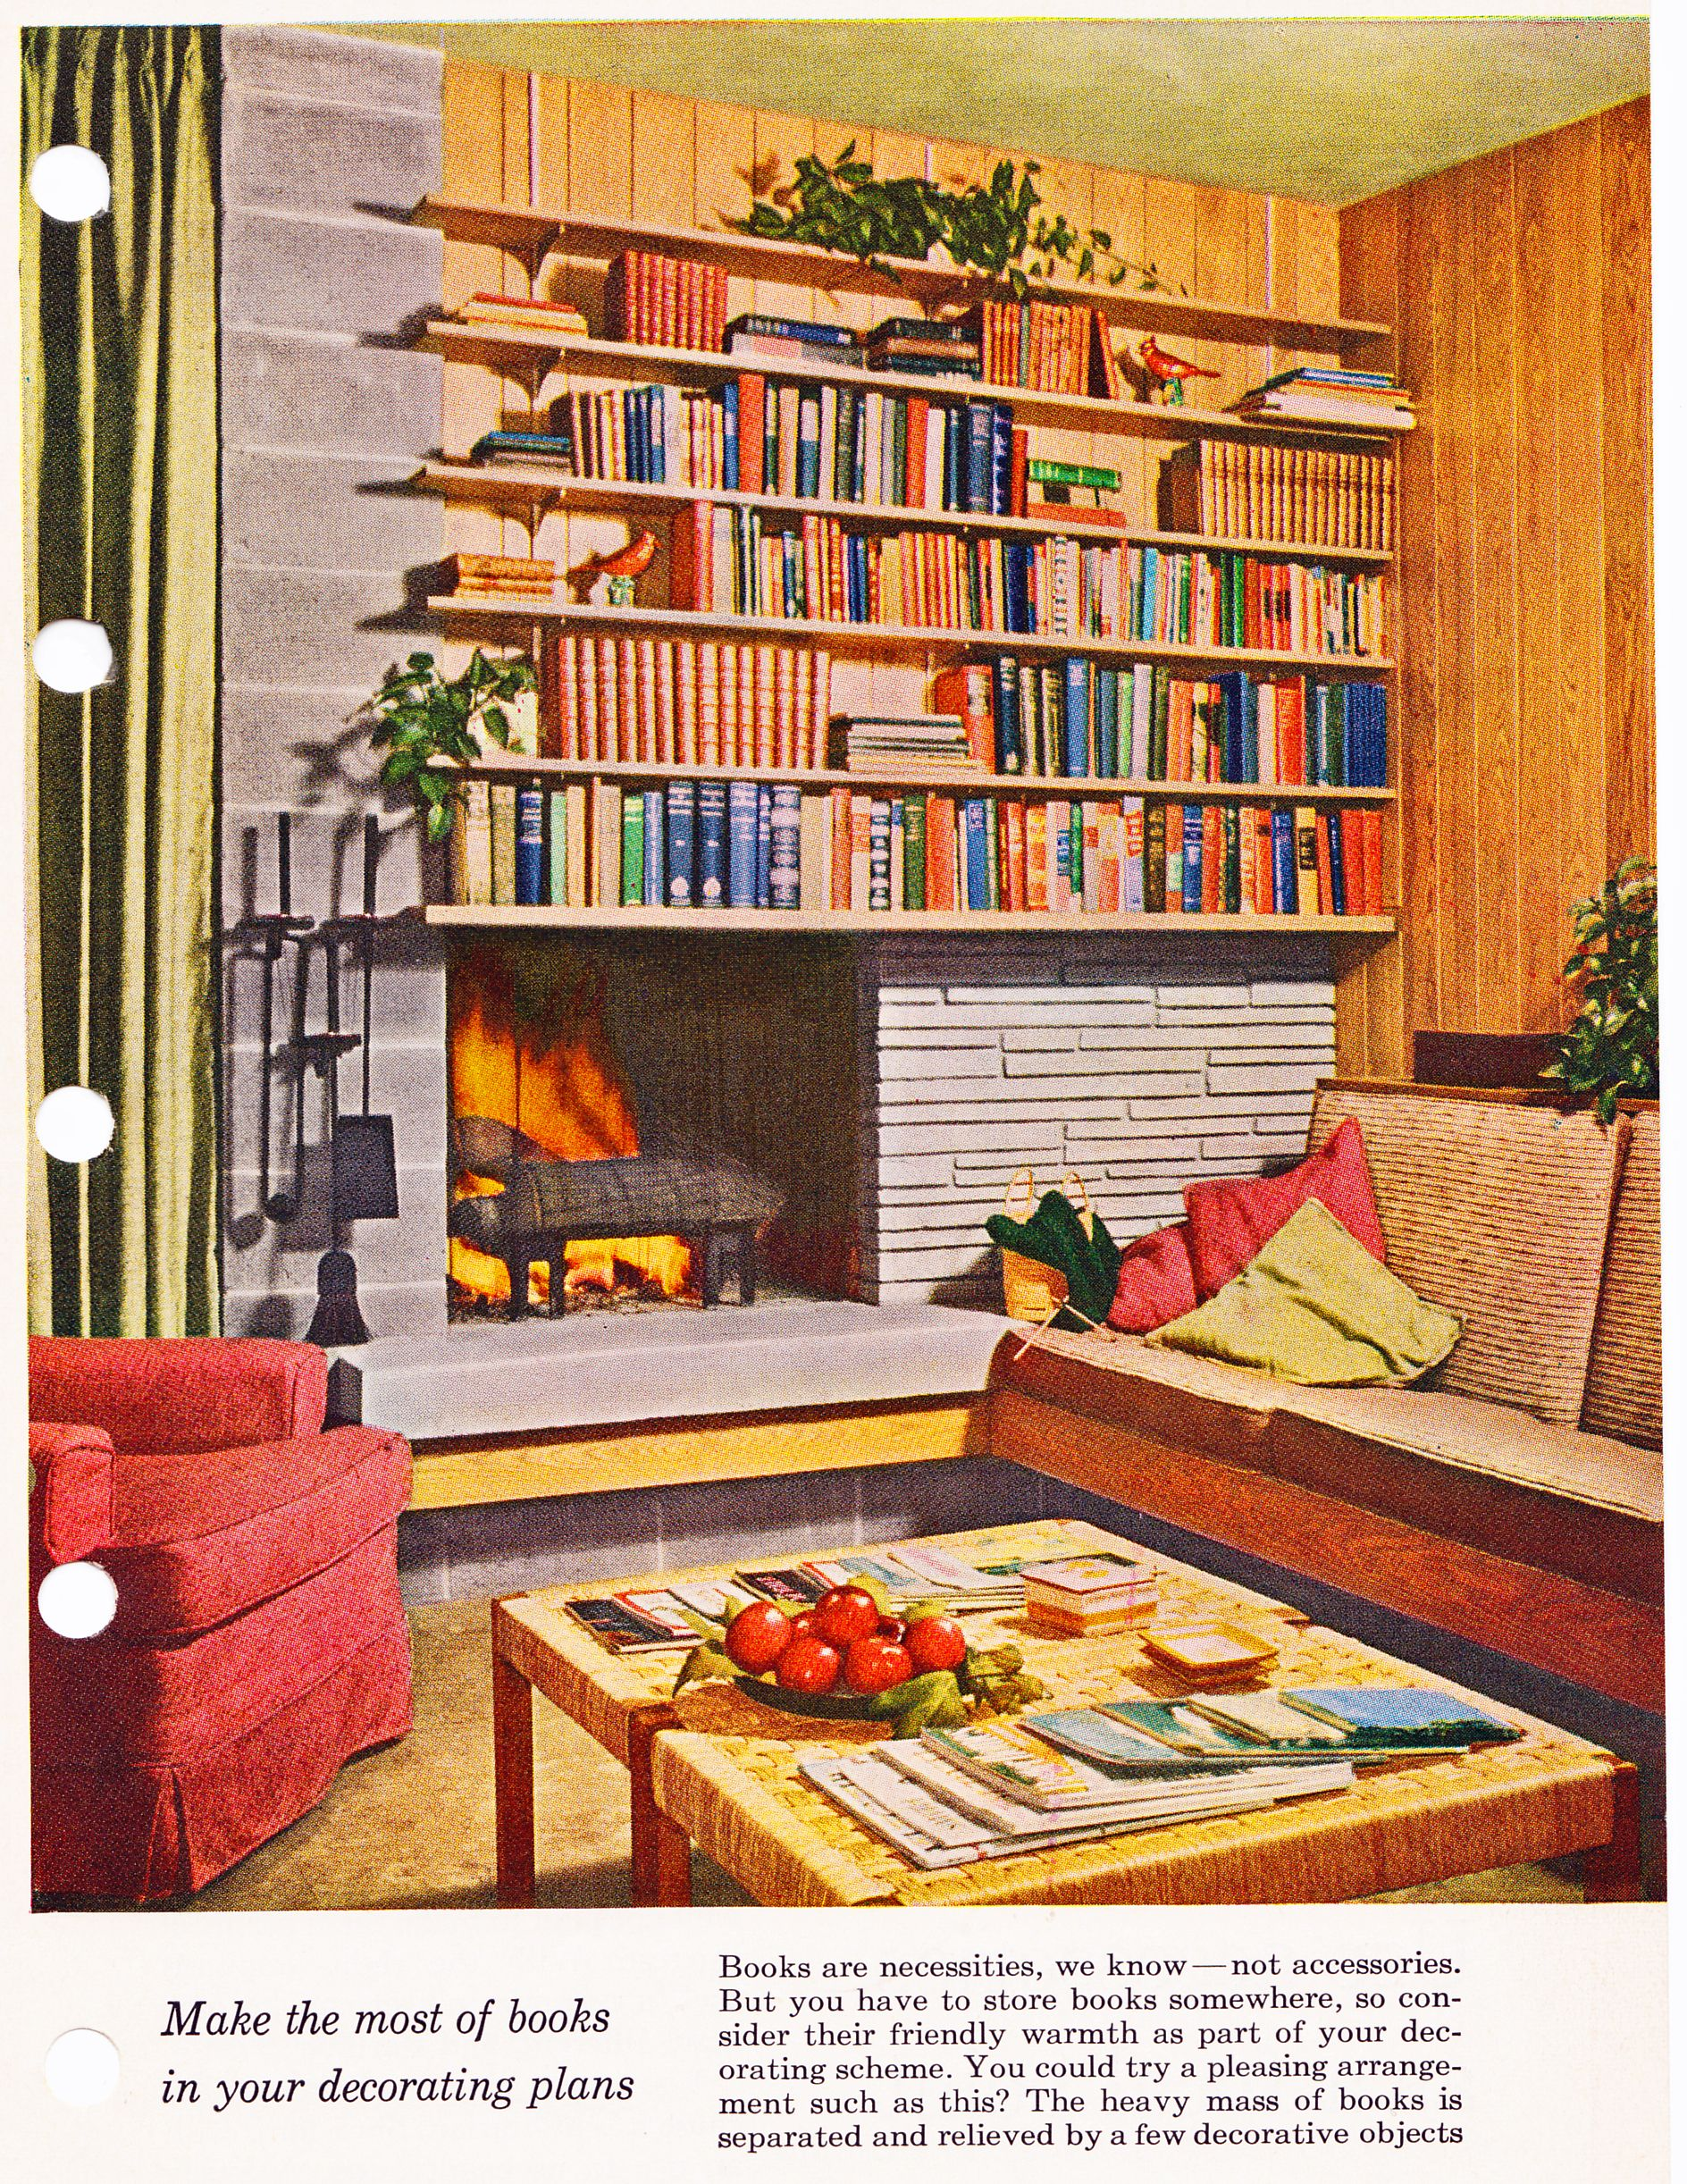 Better Homes And Gardens Decorating How To Decorate With Books Better Homes Gardens Decorating